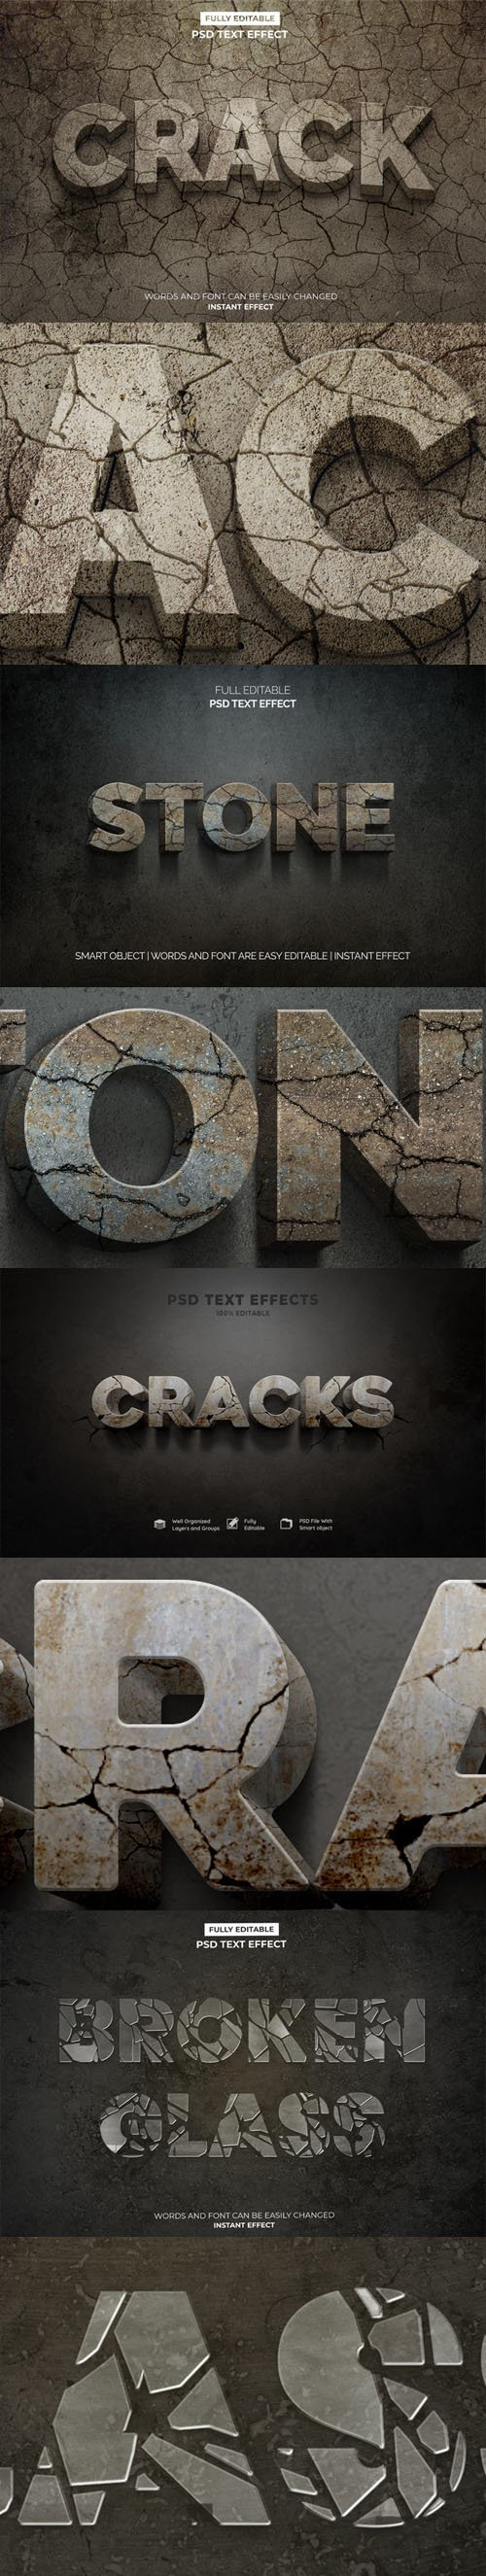 3D Crack, Stone and Broken Glass Photoshop Text Effects